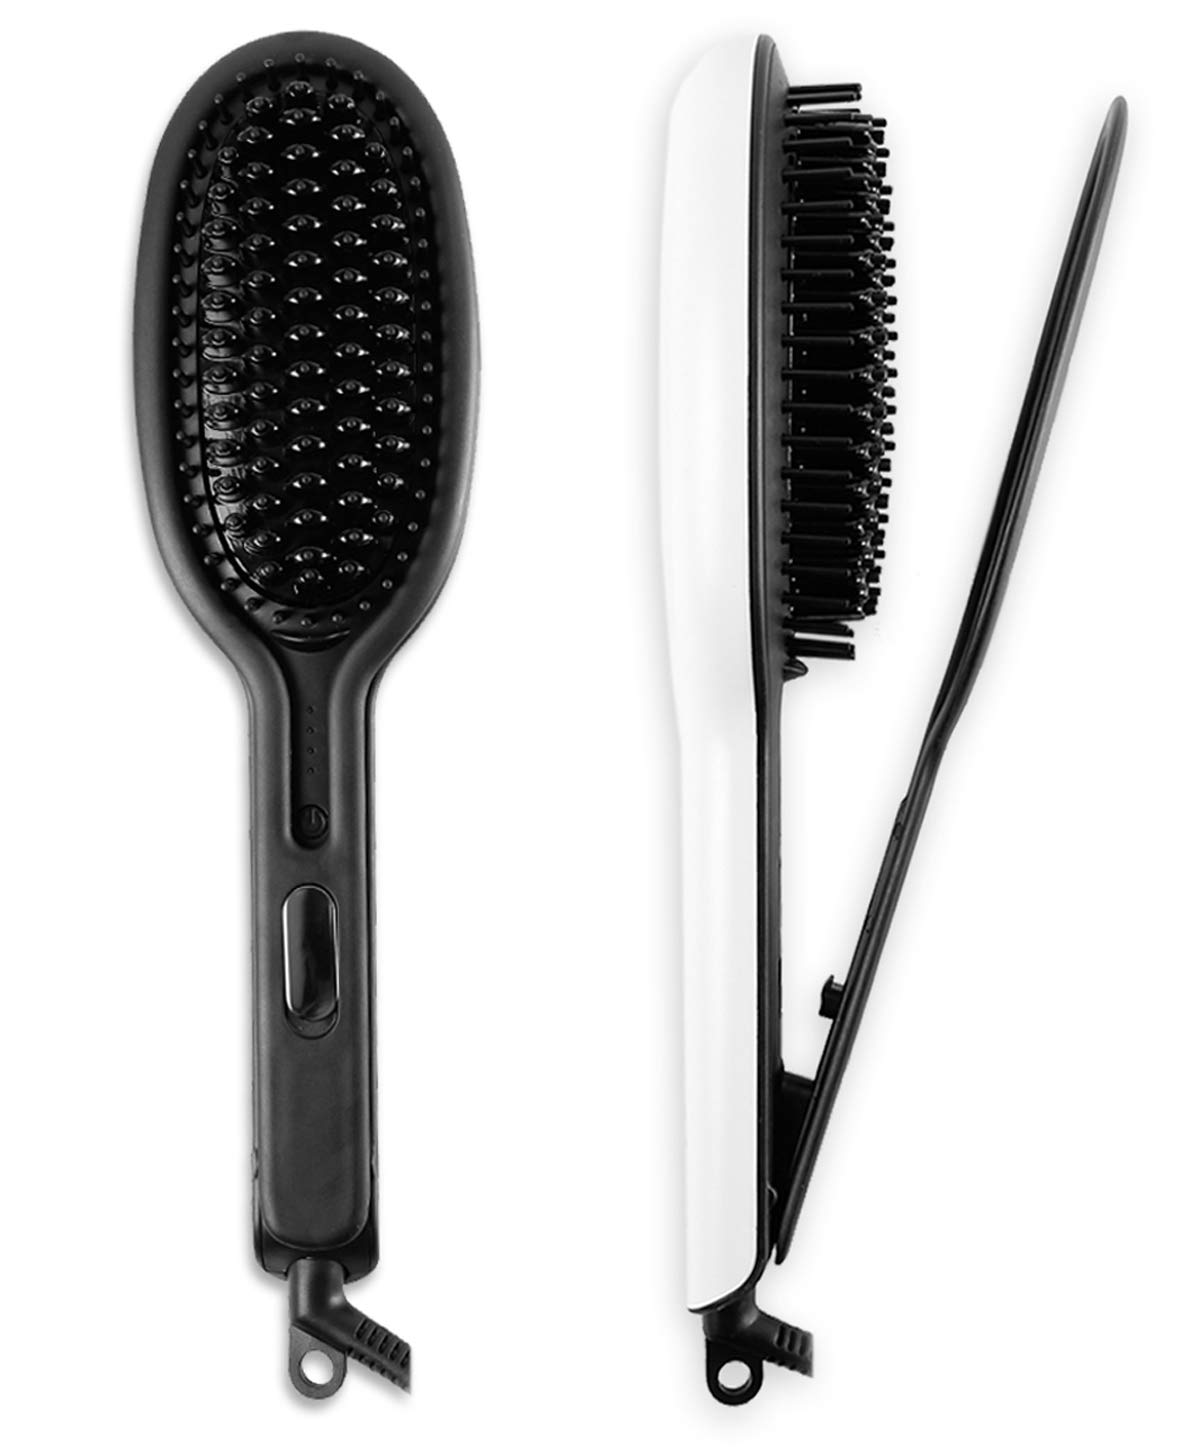 Ceramic Straightener Brush Straightening Hair – Electric Hot Comb With Double Negative Flat Irons,Anti Static,Anti-scald Faster Heated MCH Technology,Auto Shut Off Temperature Lock Functionz